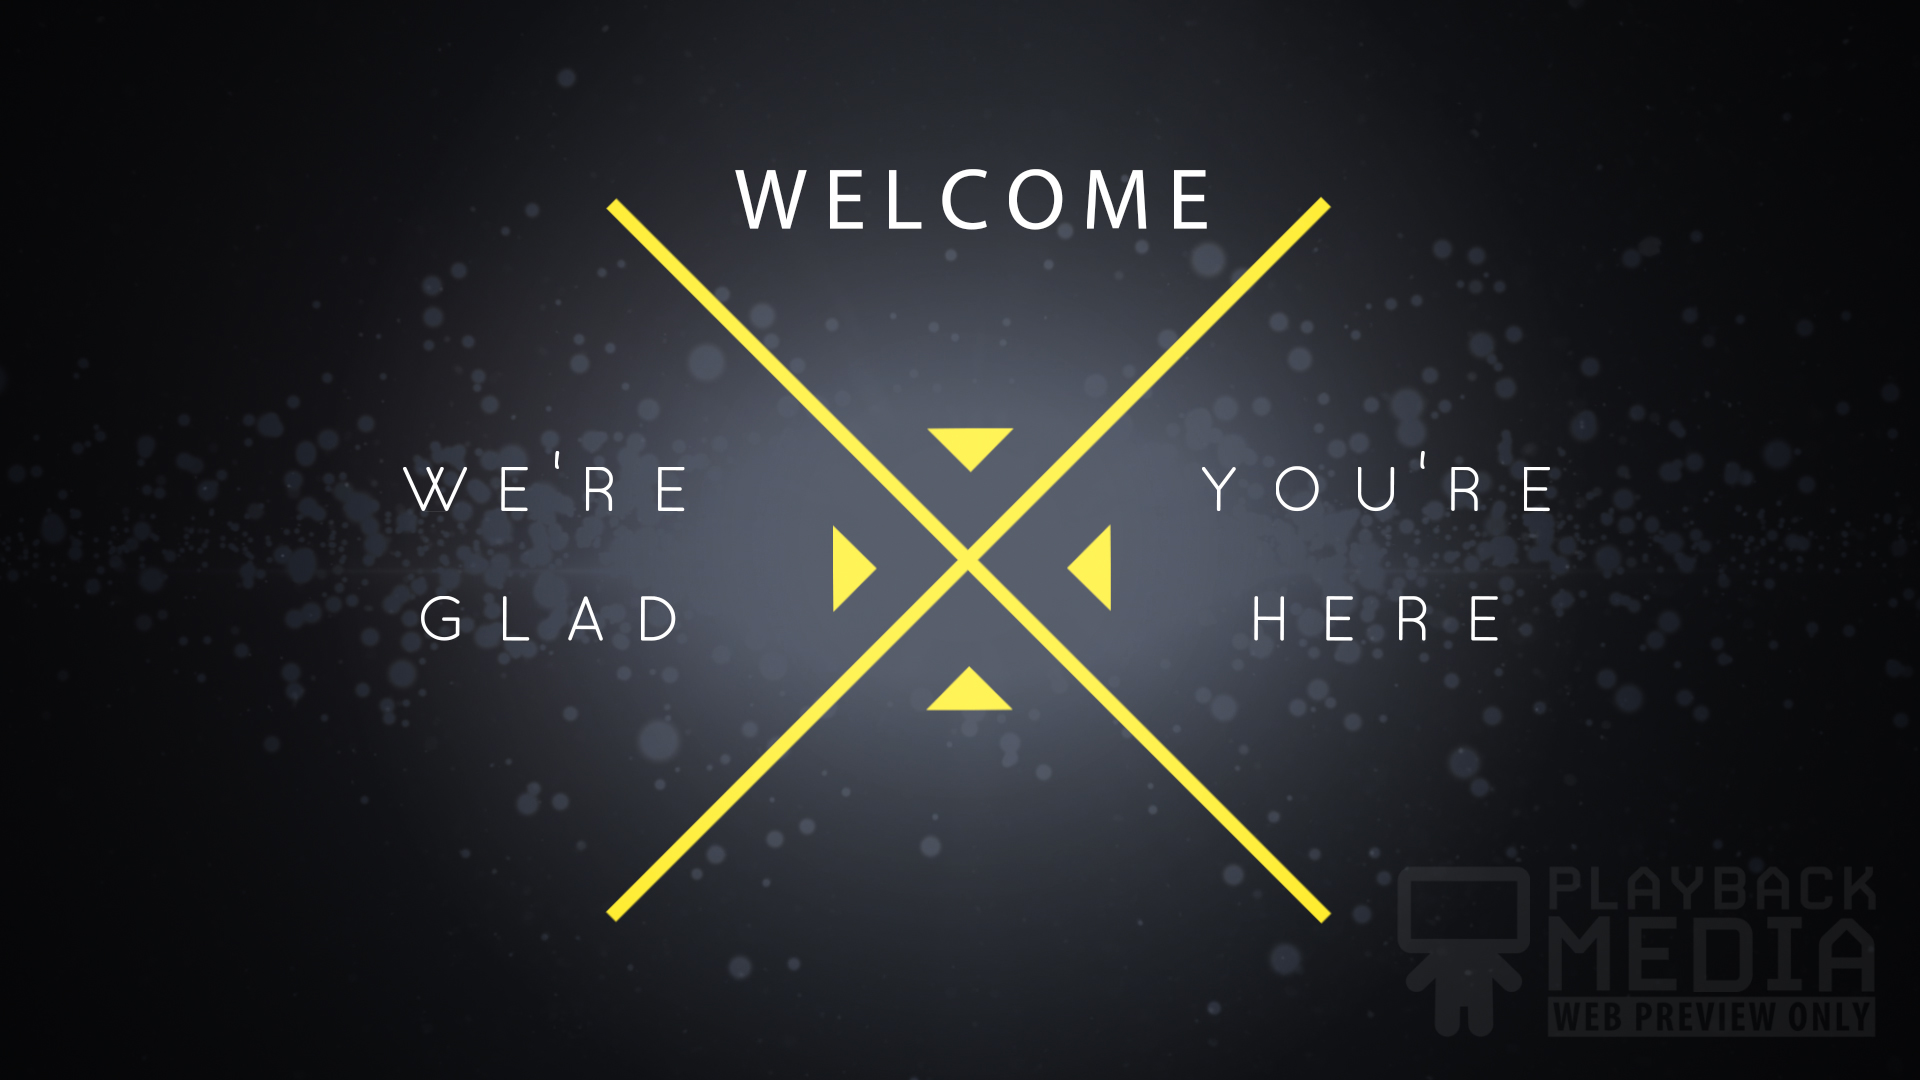 New Years Momentum Welcome Motion Image